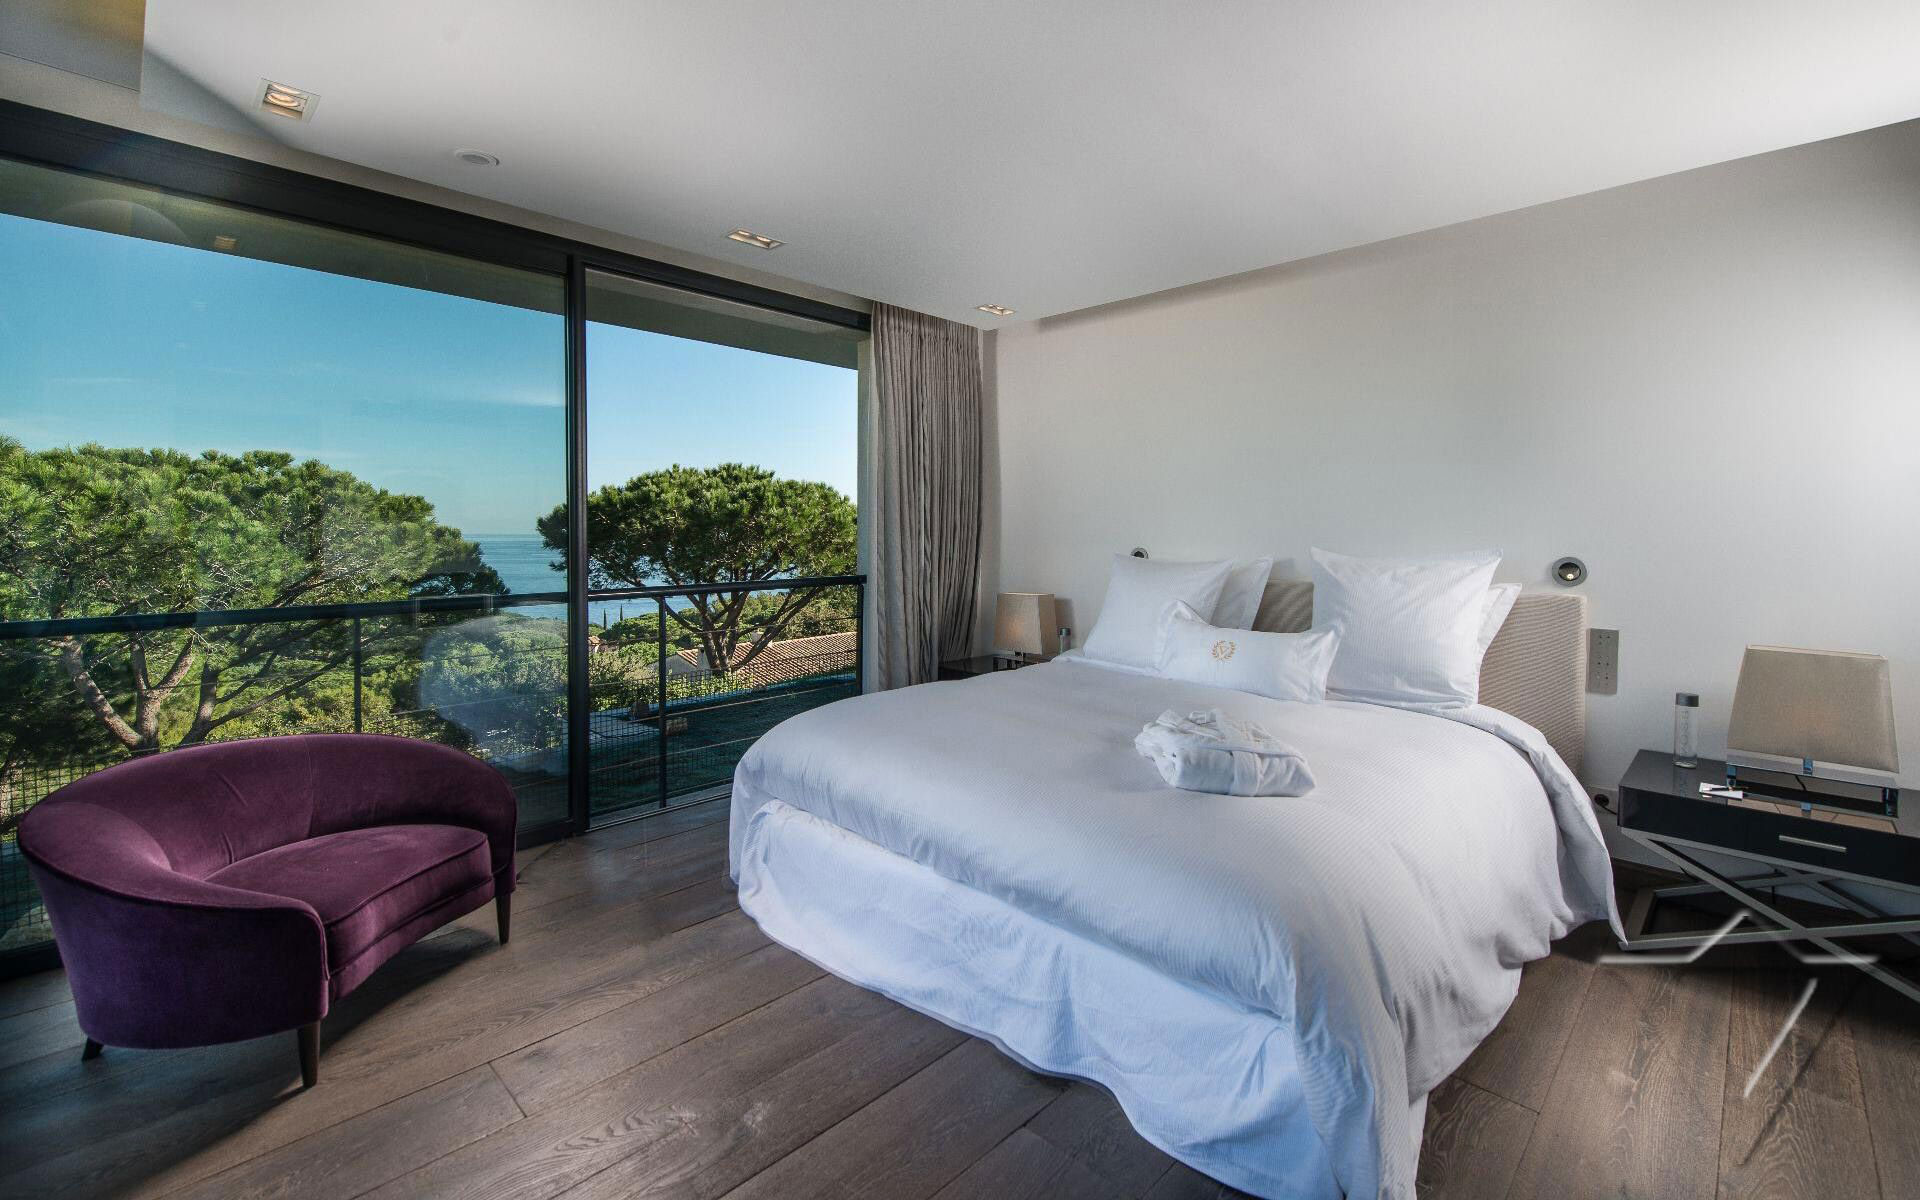 Patio Doors, Bedroom, Luxury Holiday Villa in Saint-Tropez, France